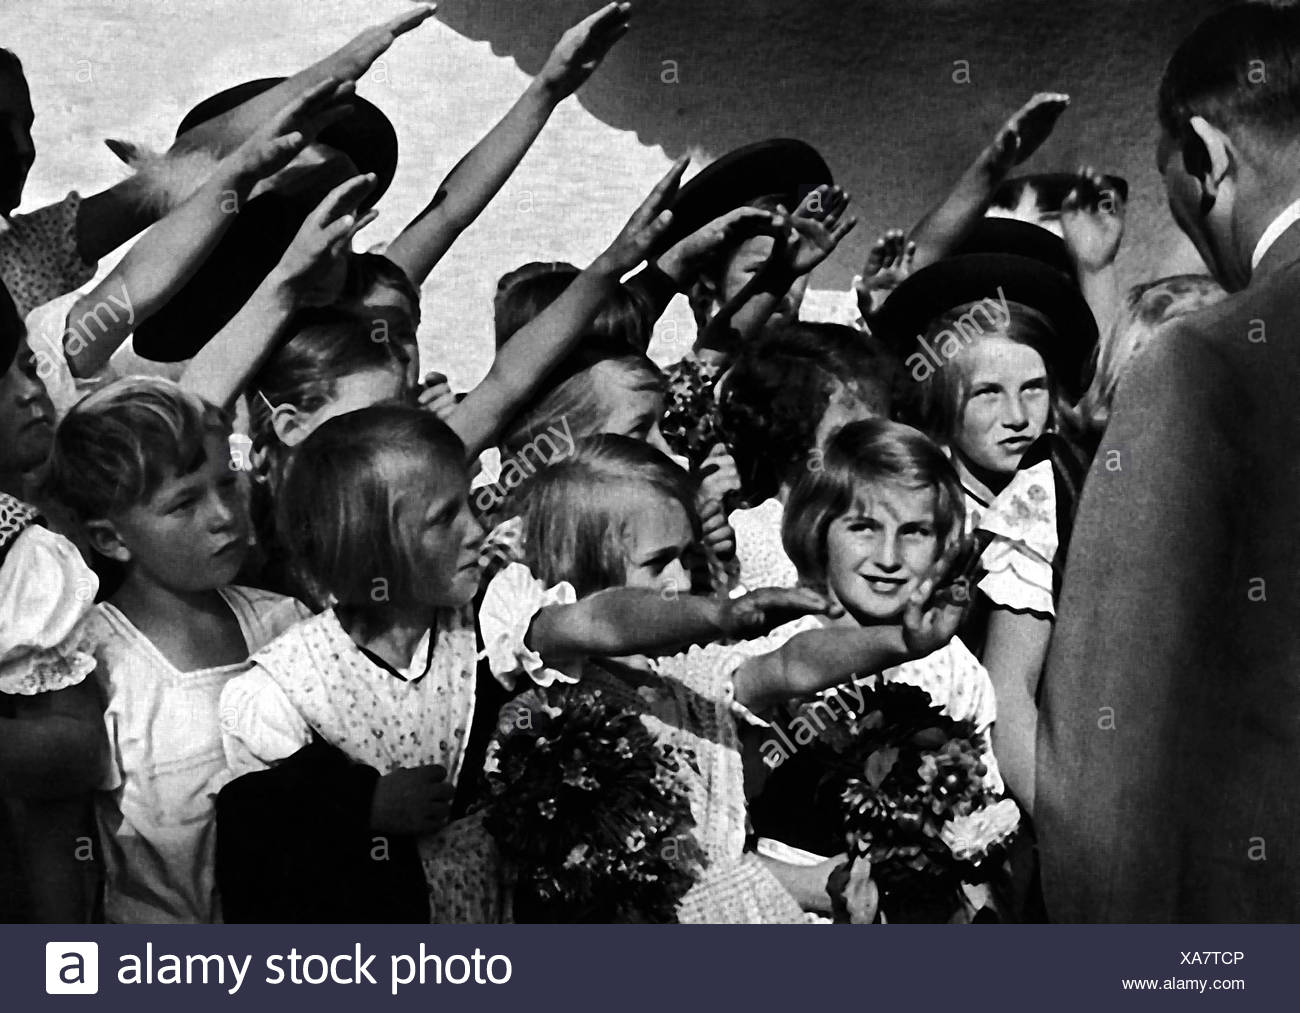 Hitler, Adolf, 20.4.1889 - 30.4.1945, German politician (NSDAP), children saluting him, Additional-Rights-Clearances-NA - Stock Image